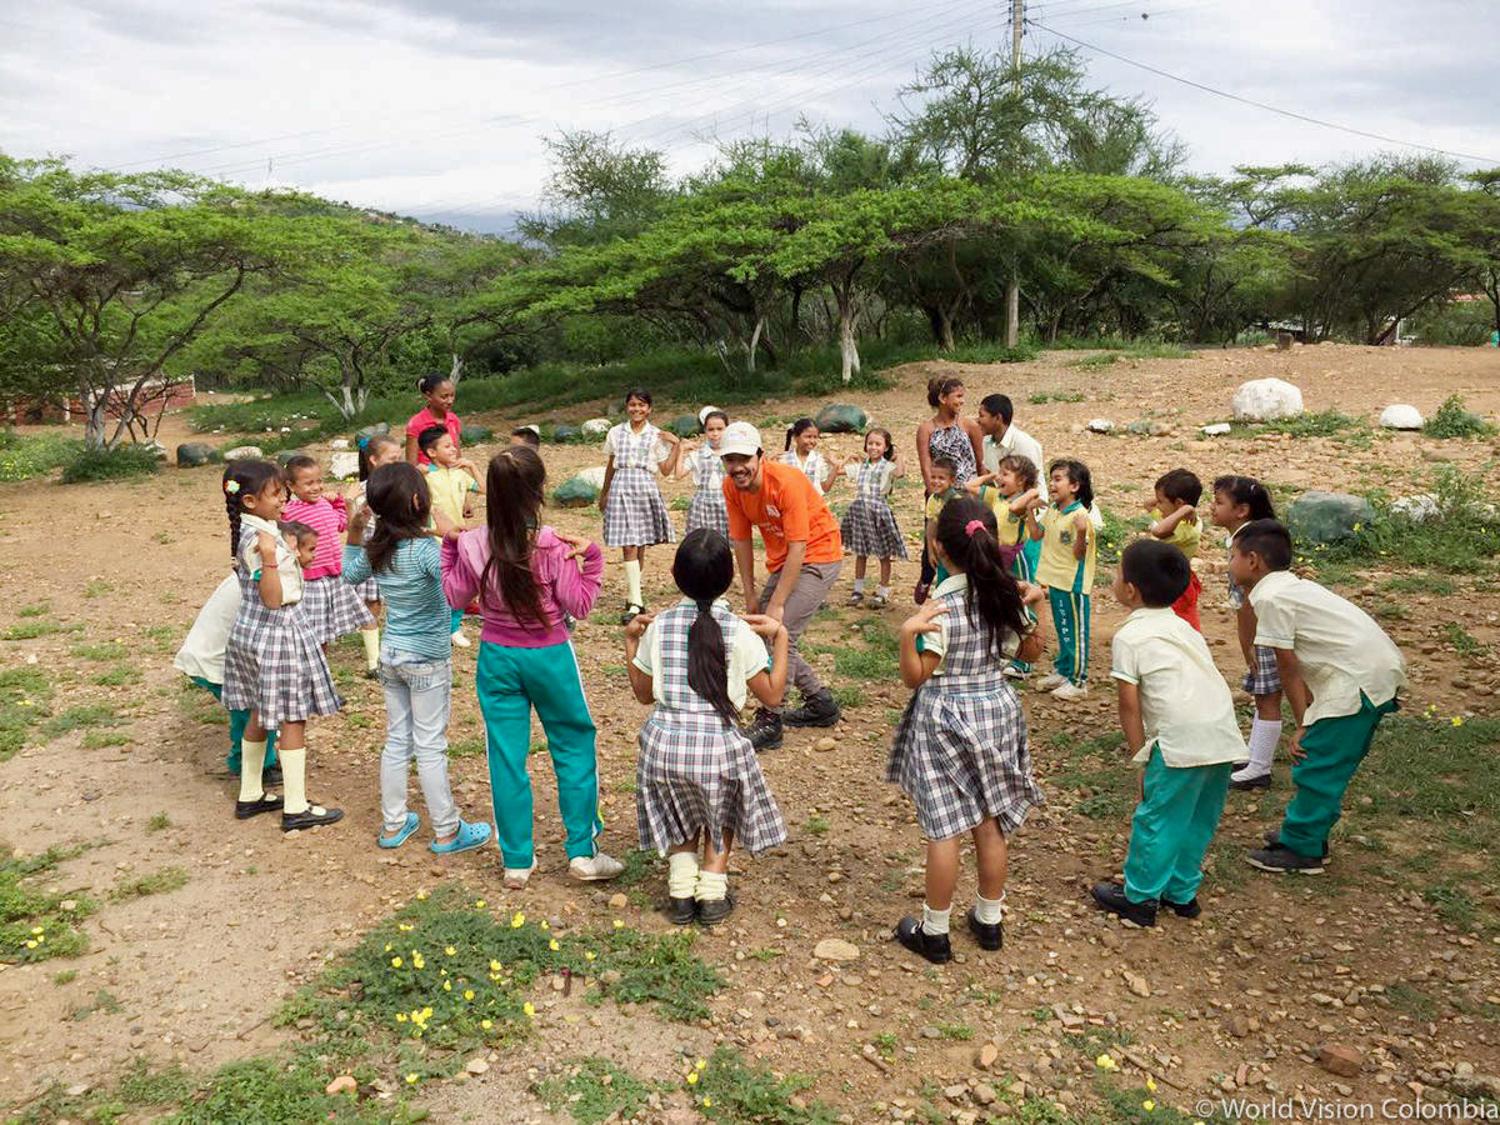 Venezuela Migrant Crisis Response Staff with children playing in a circle